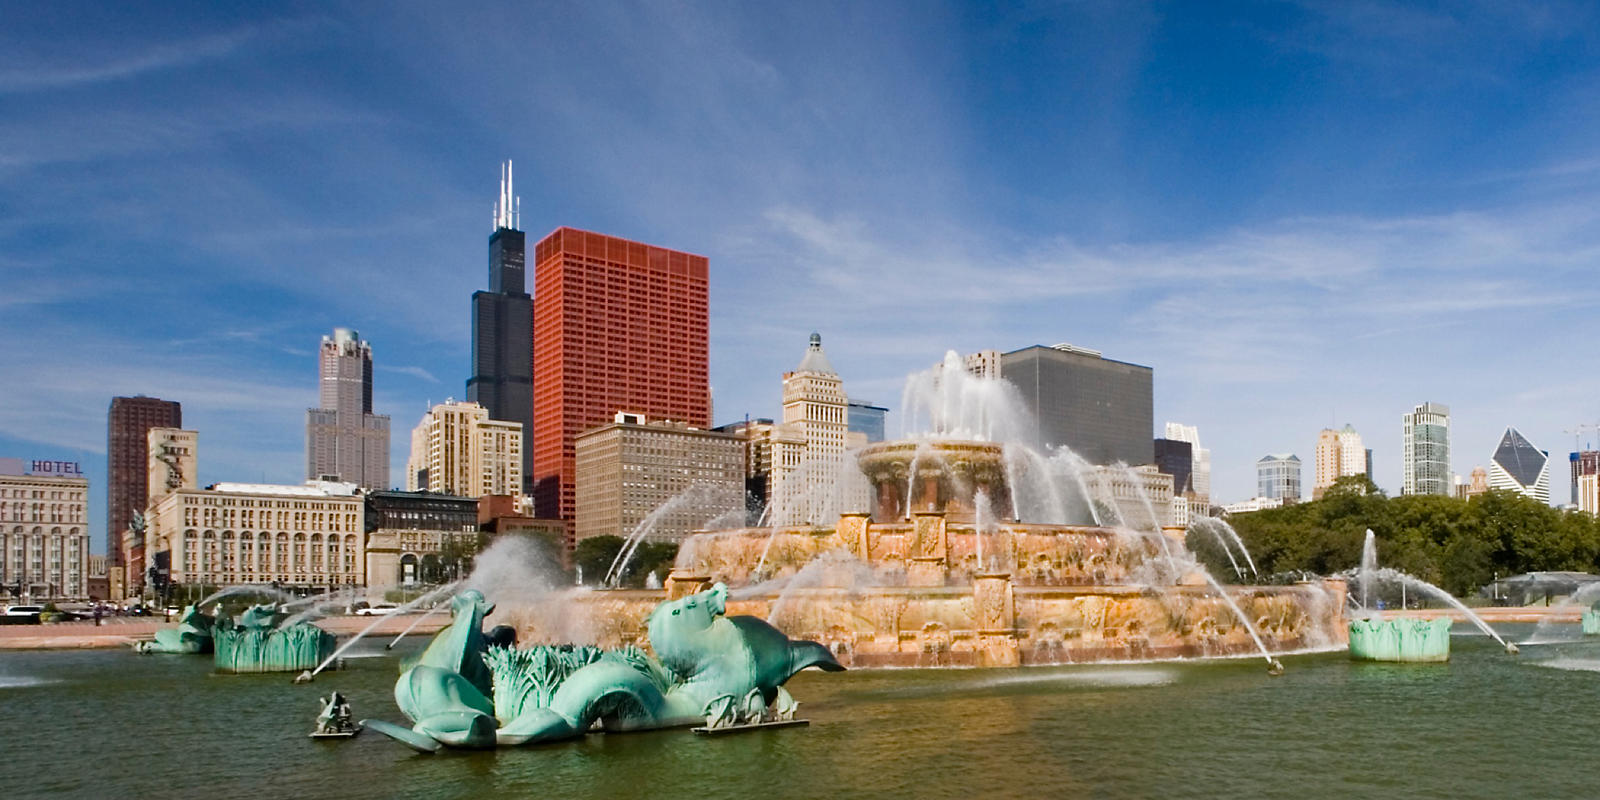 Millennium Park Buckingham Fountain daytime view